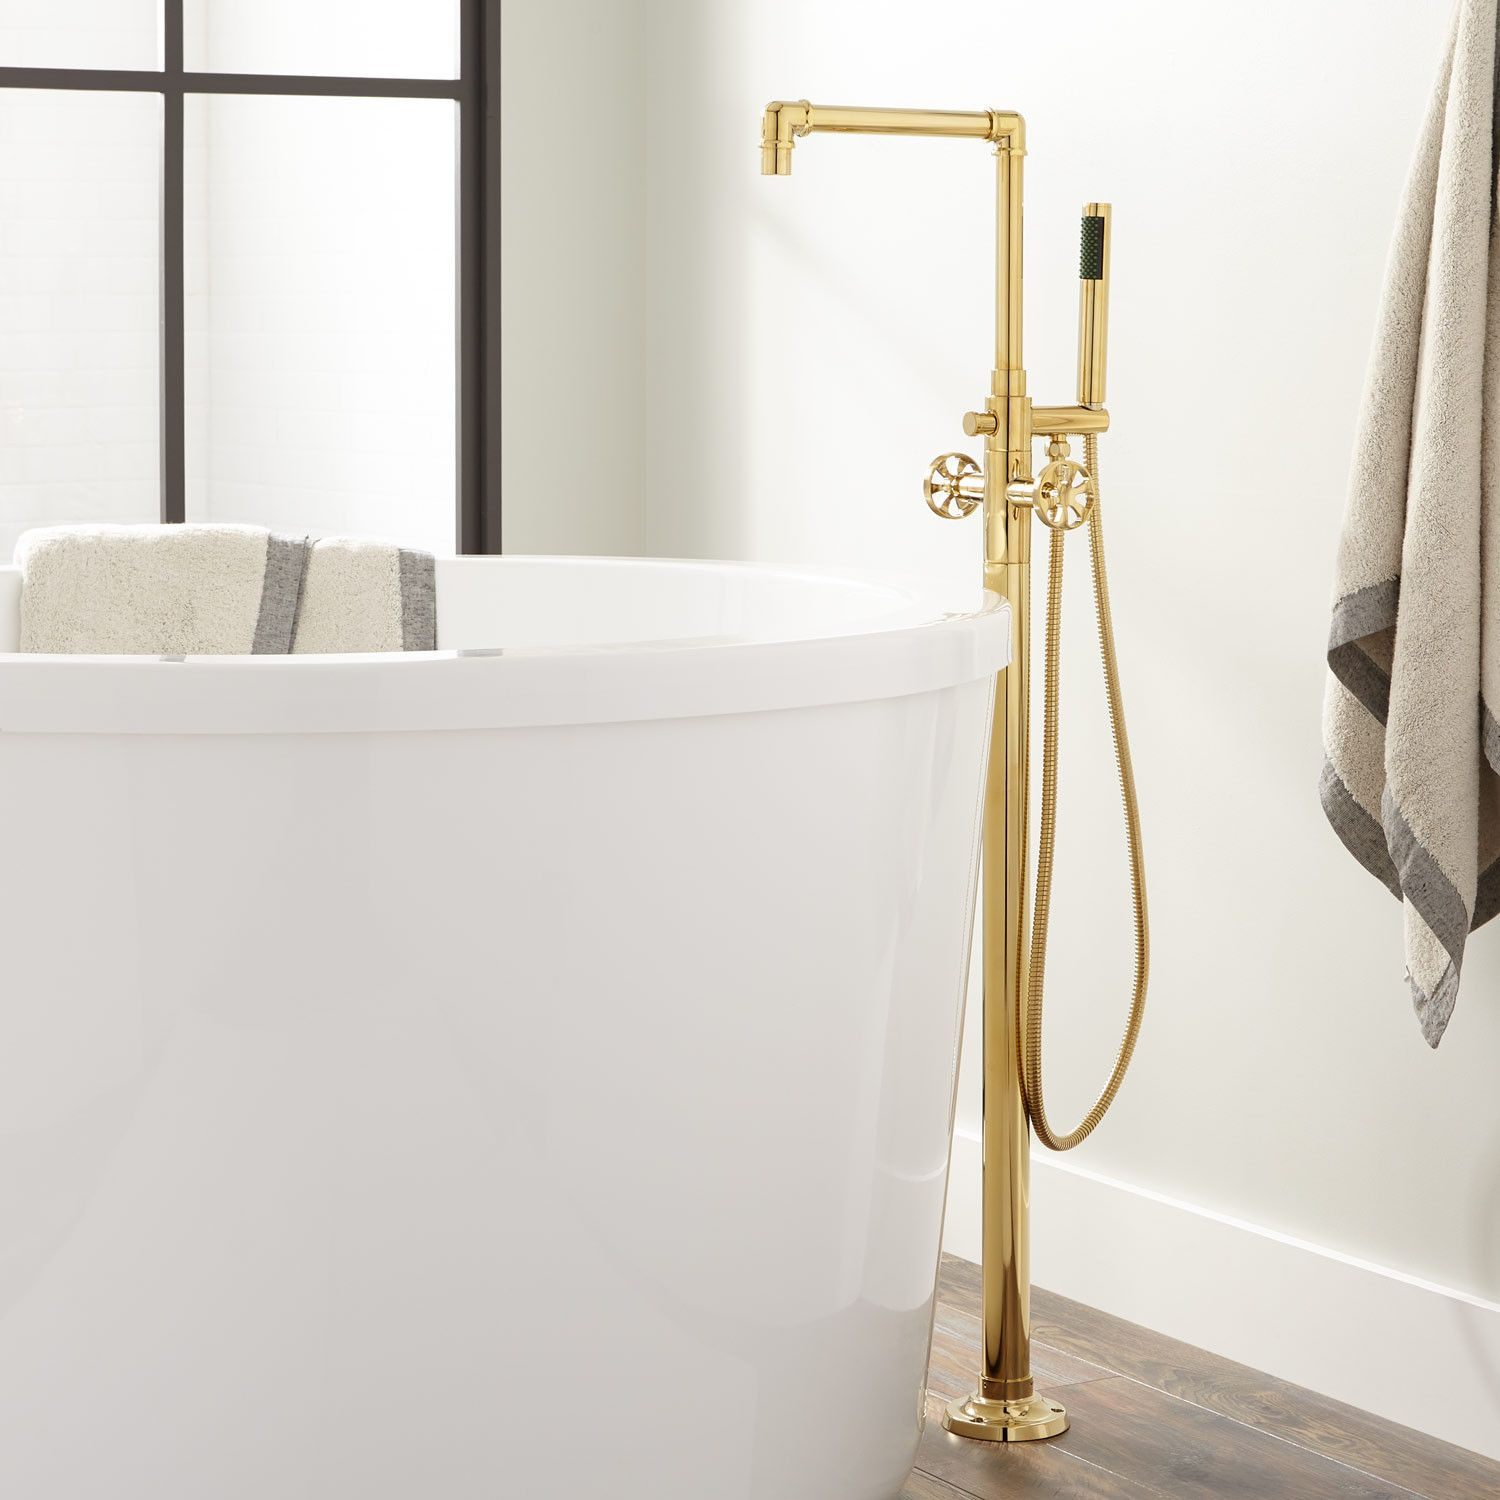 Edison Freestanding Tub Faucet With Hand Shower Bathroom